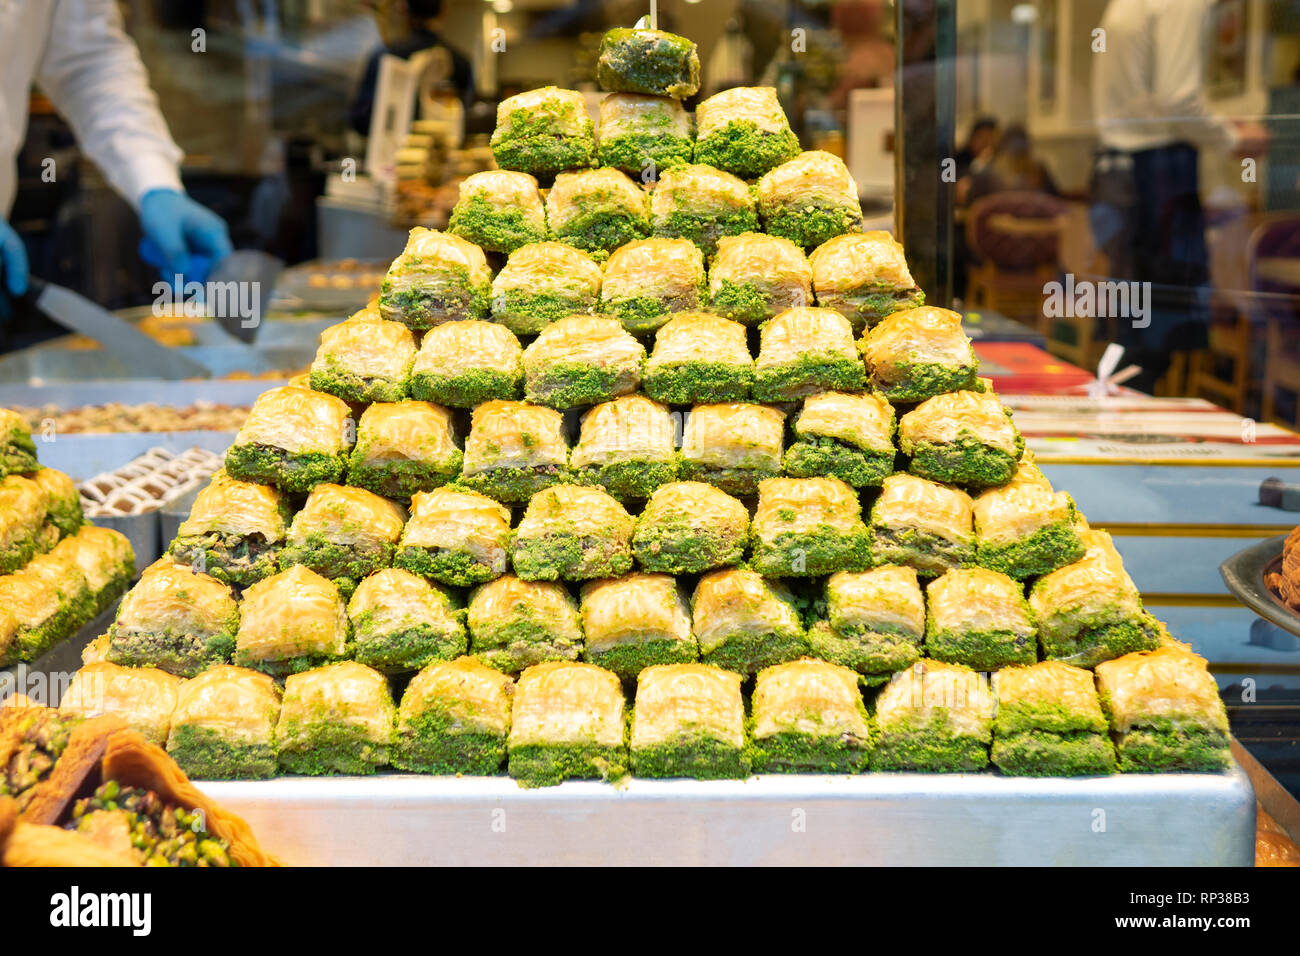 Eastern sweets in a wide range, baklava, Turkish delight with almond, cashew and pistachio nuts on plates Stock Photo